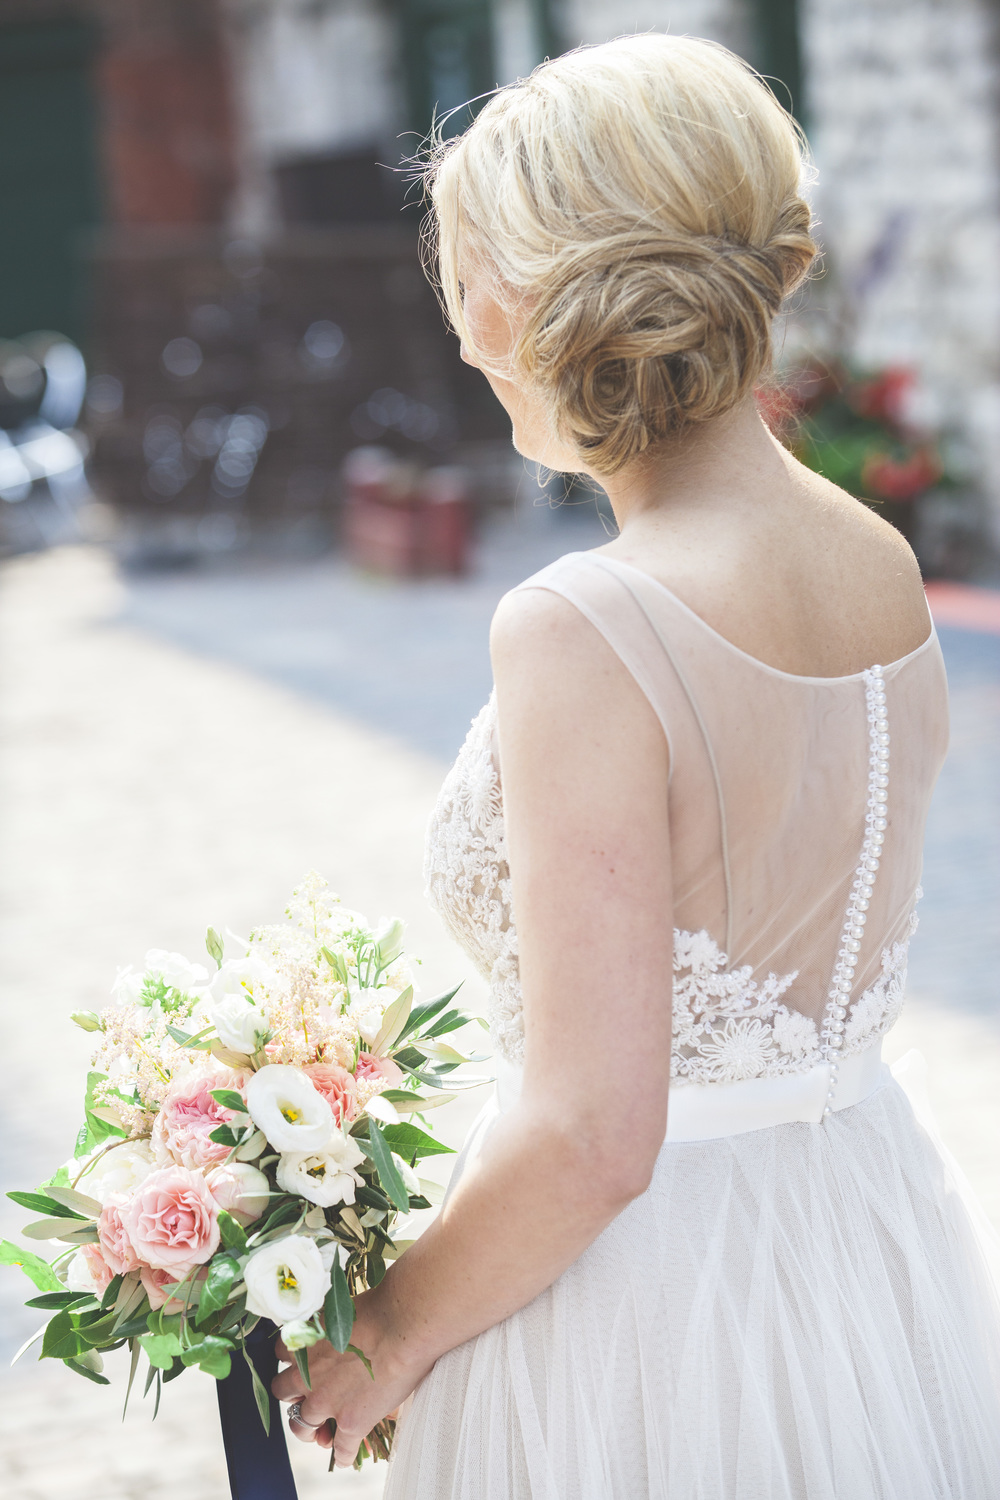 A beautiful wedding bouquet and dress photograph.